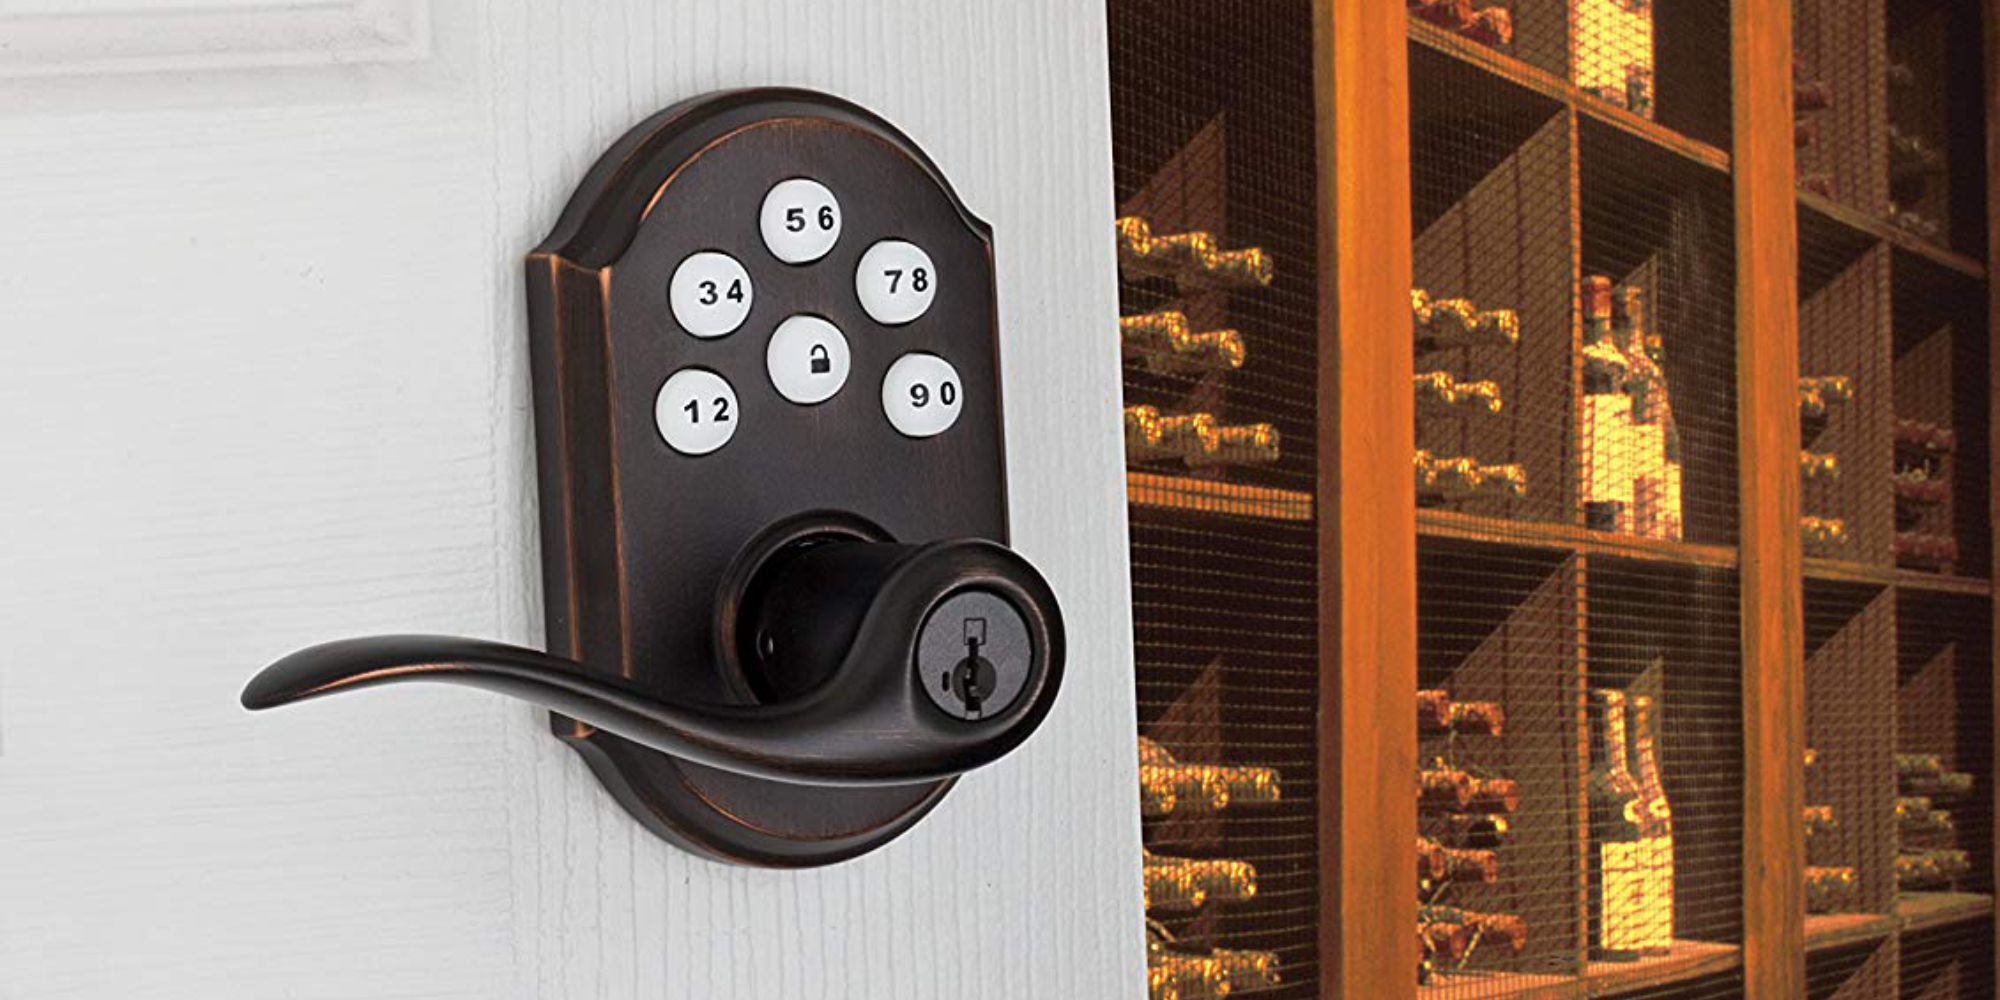 These passcode-enabled Kwikset locks fall as low as $40 at Amazon - 9to5Toys